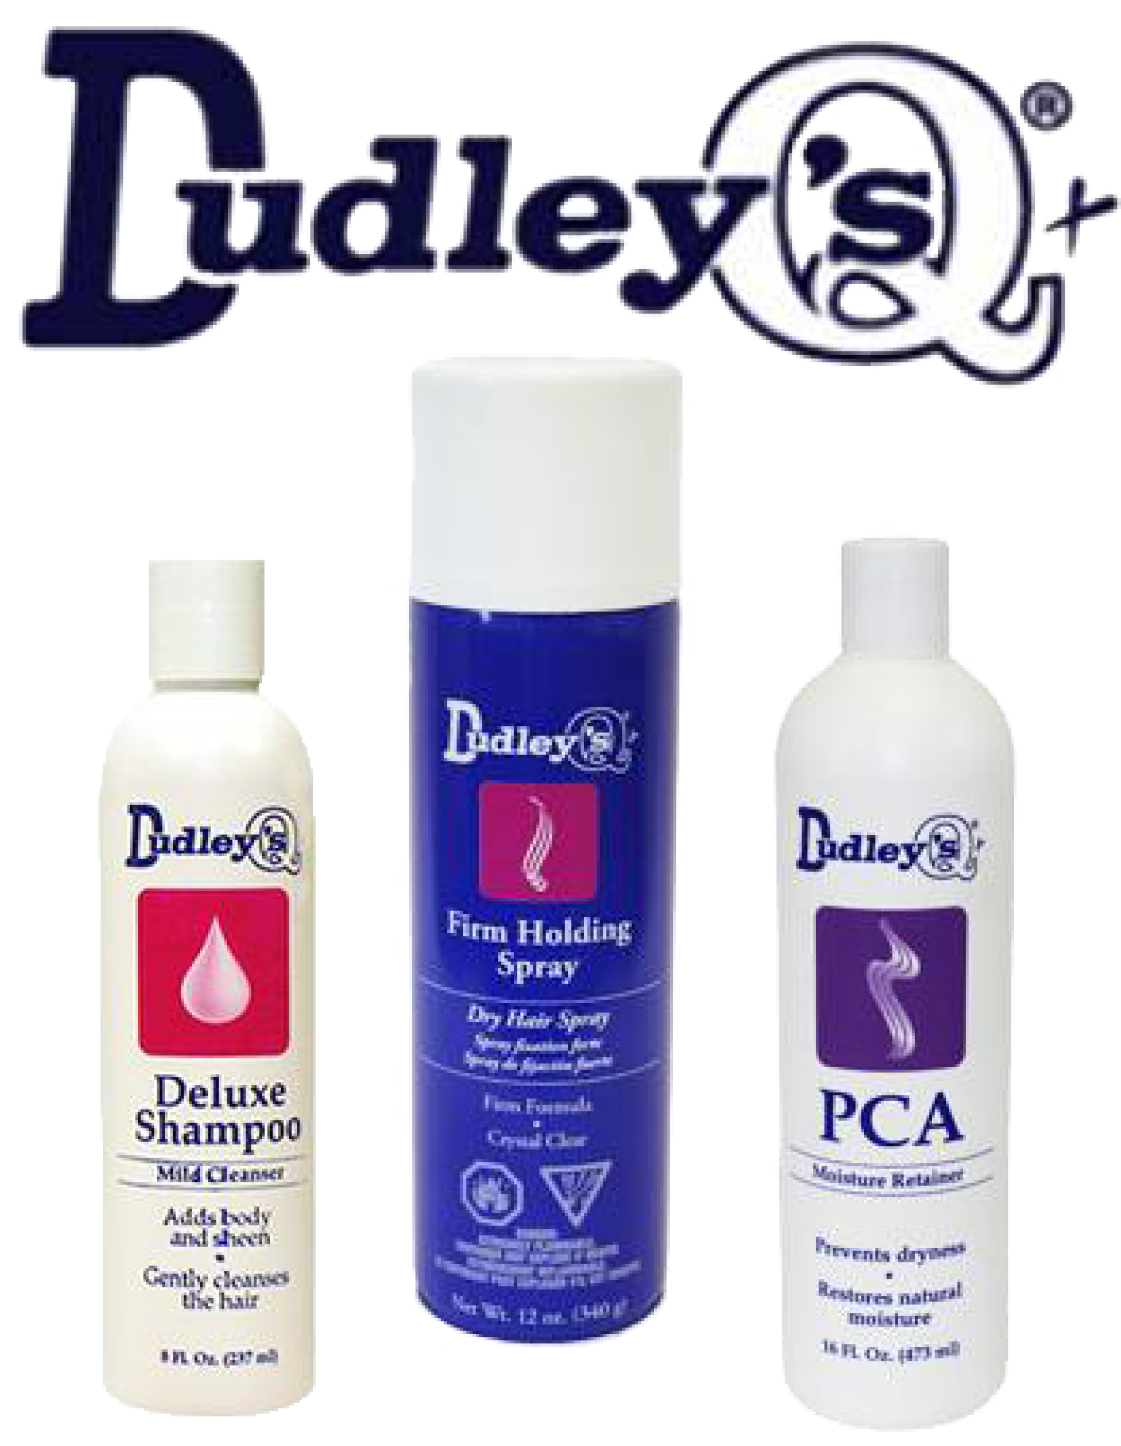 https://0201.nccdn.net/4_2/000/000/078/264/DUDLEYPRODUCTS-1121x1446.png